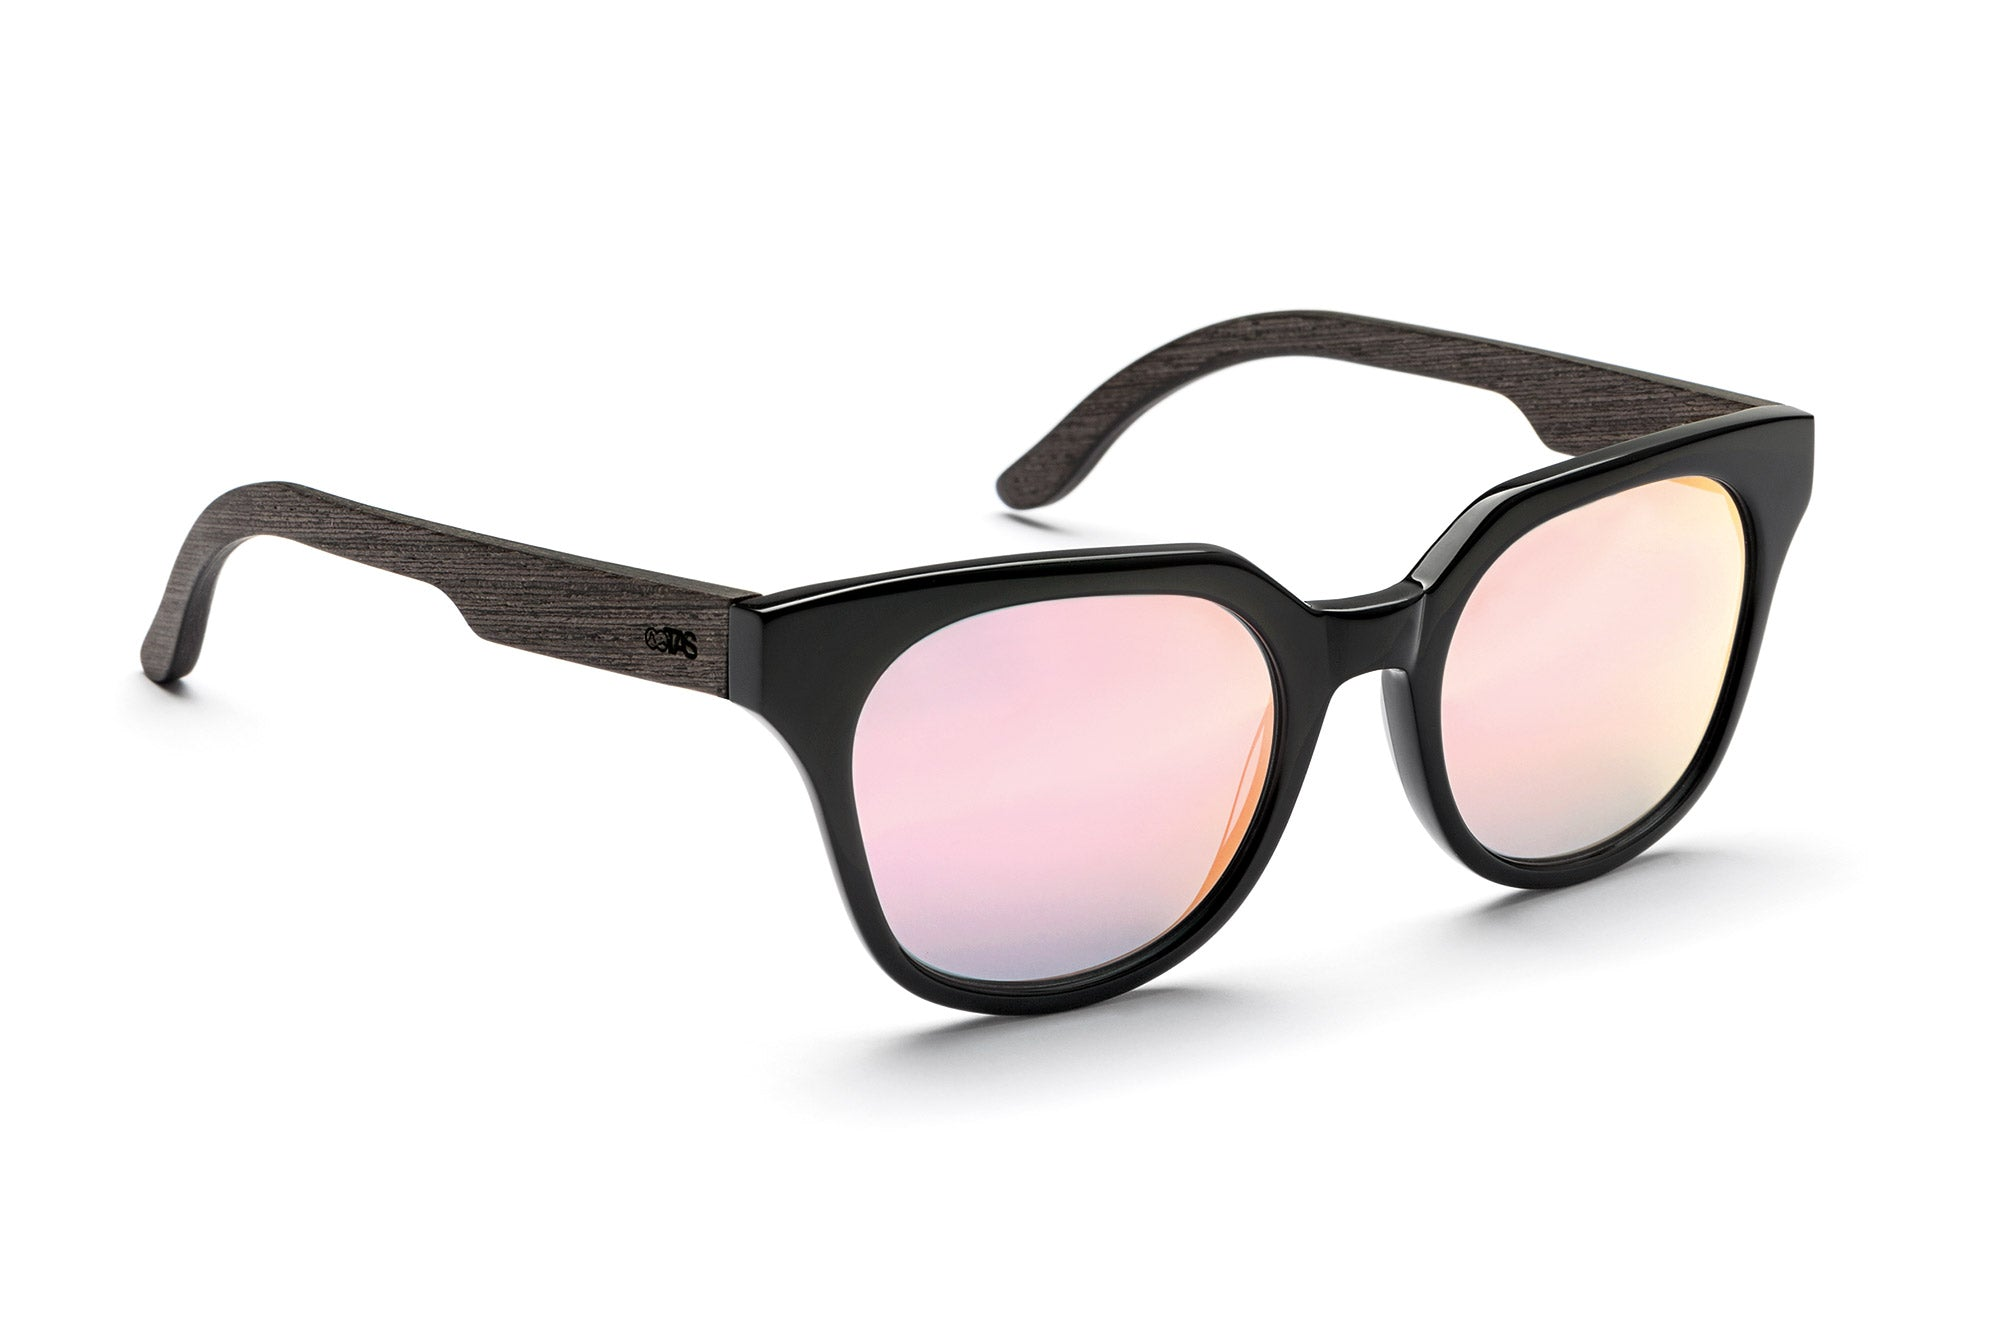 Jackie Cateye Sonnenbrille Holz rose Verspiegelung TAKE A SHOT